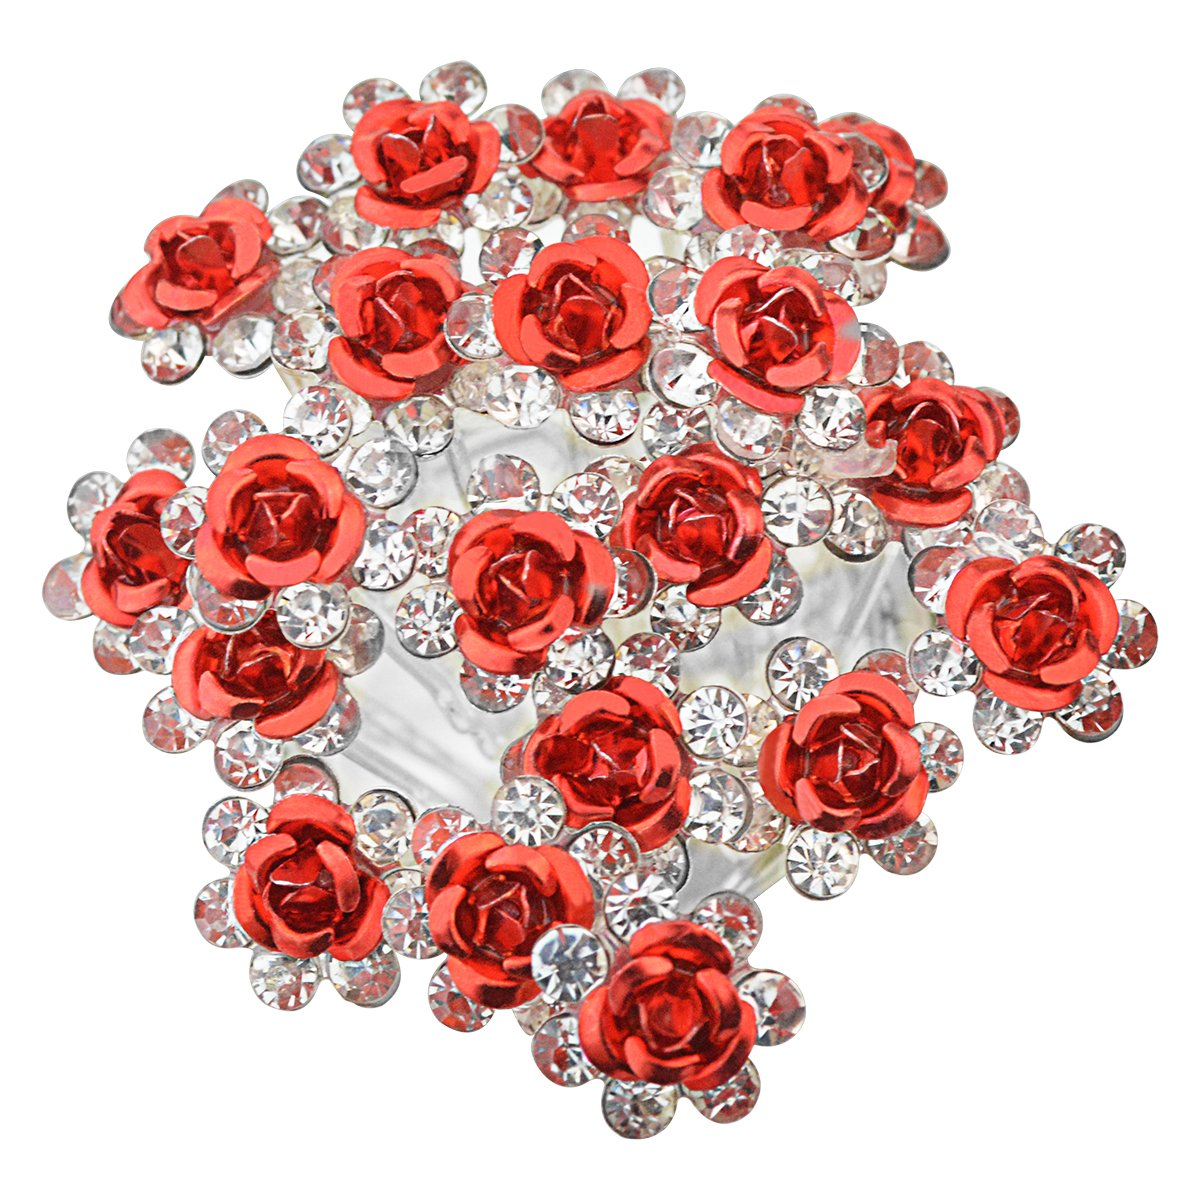 Rbenxia 20 Pcs Bridal Wedding Rhinstone Hair Pins 2.4 Inches Bridal Prom Clips Rose U-